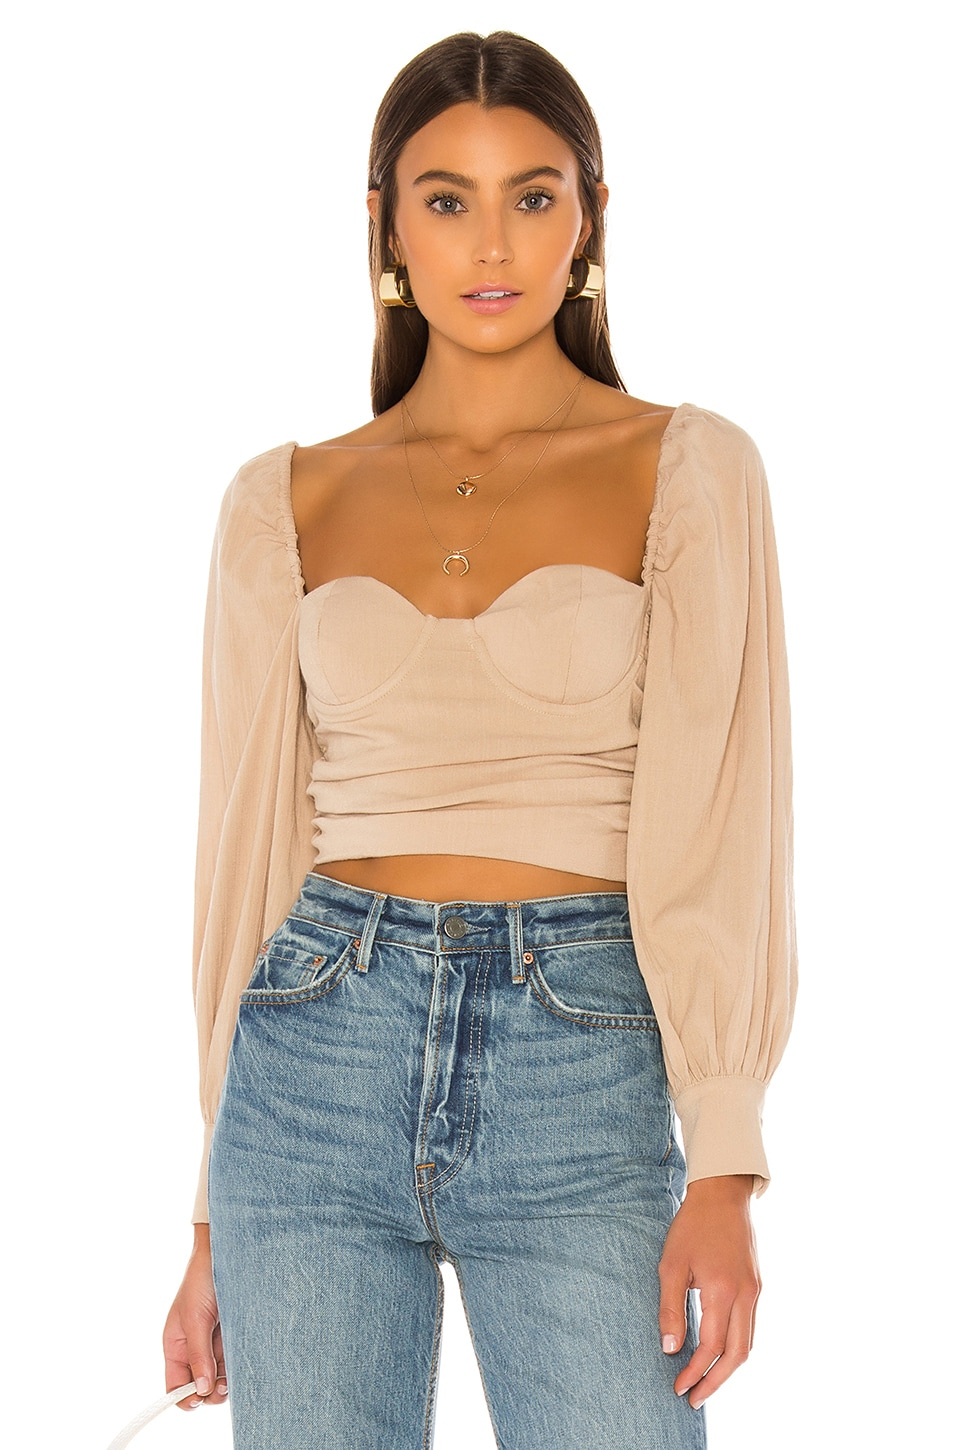 MAJORELLE Emily Top in Beige